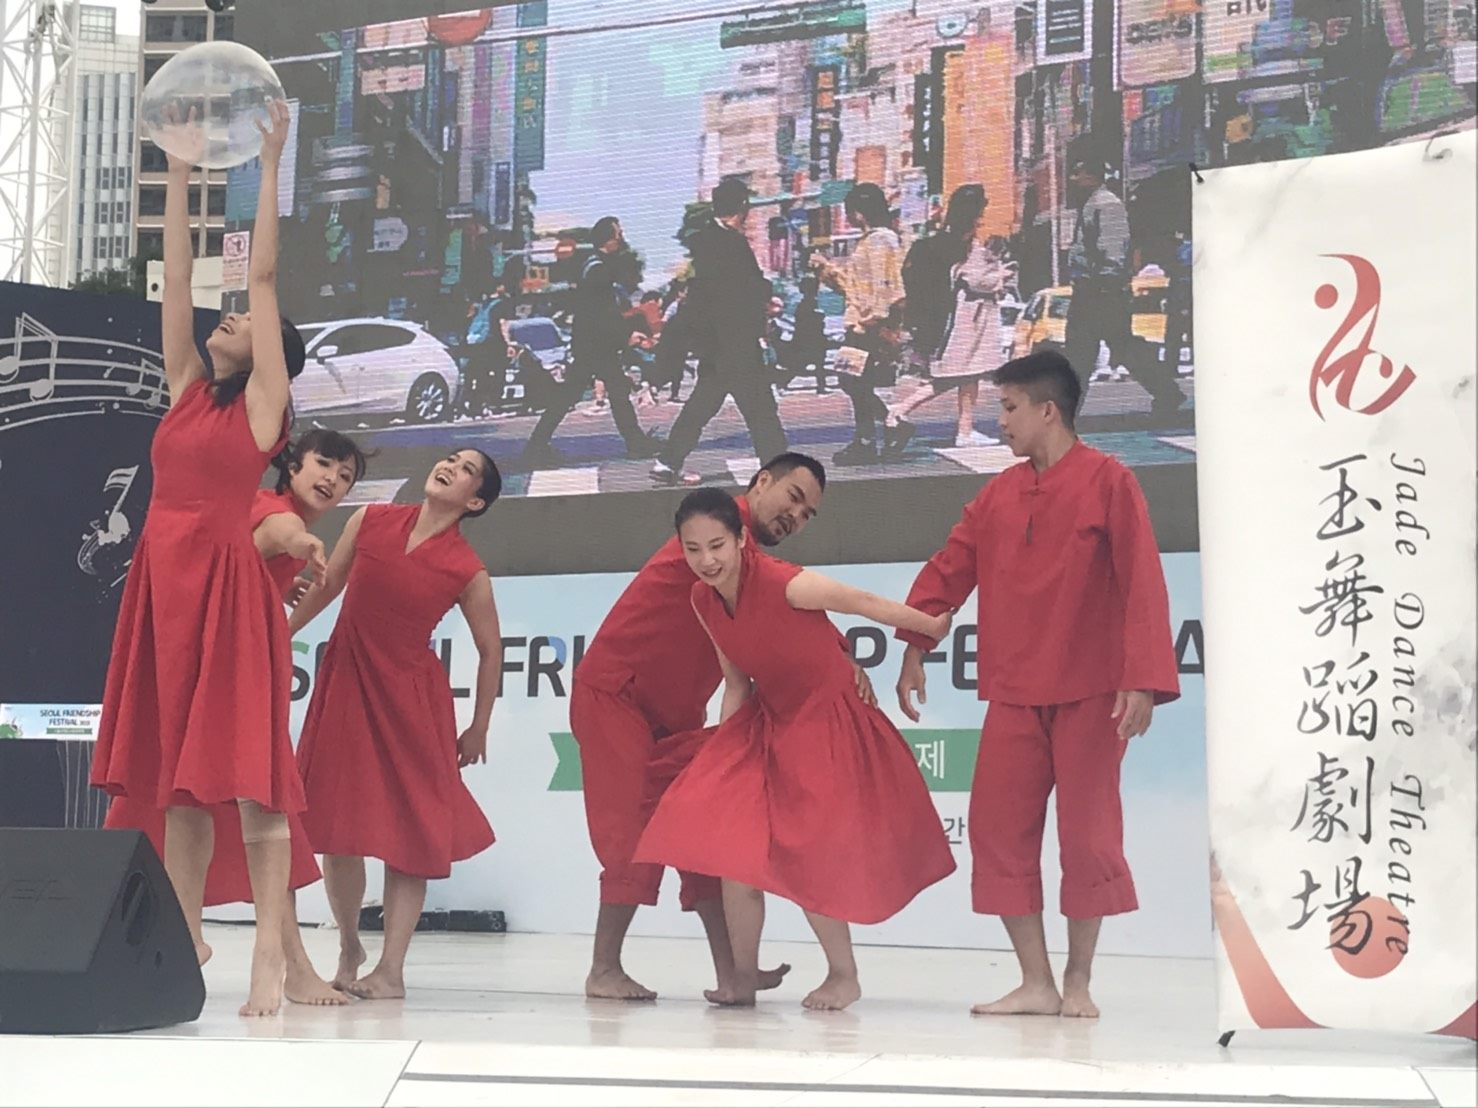 The Jade Dance Theatre performance at the festival